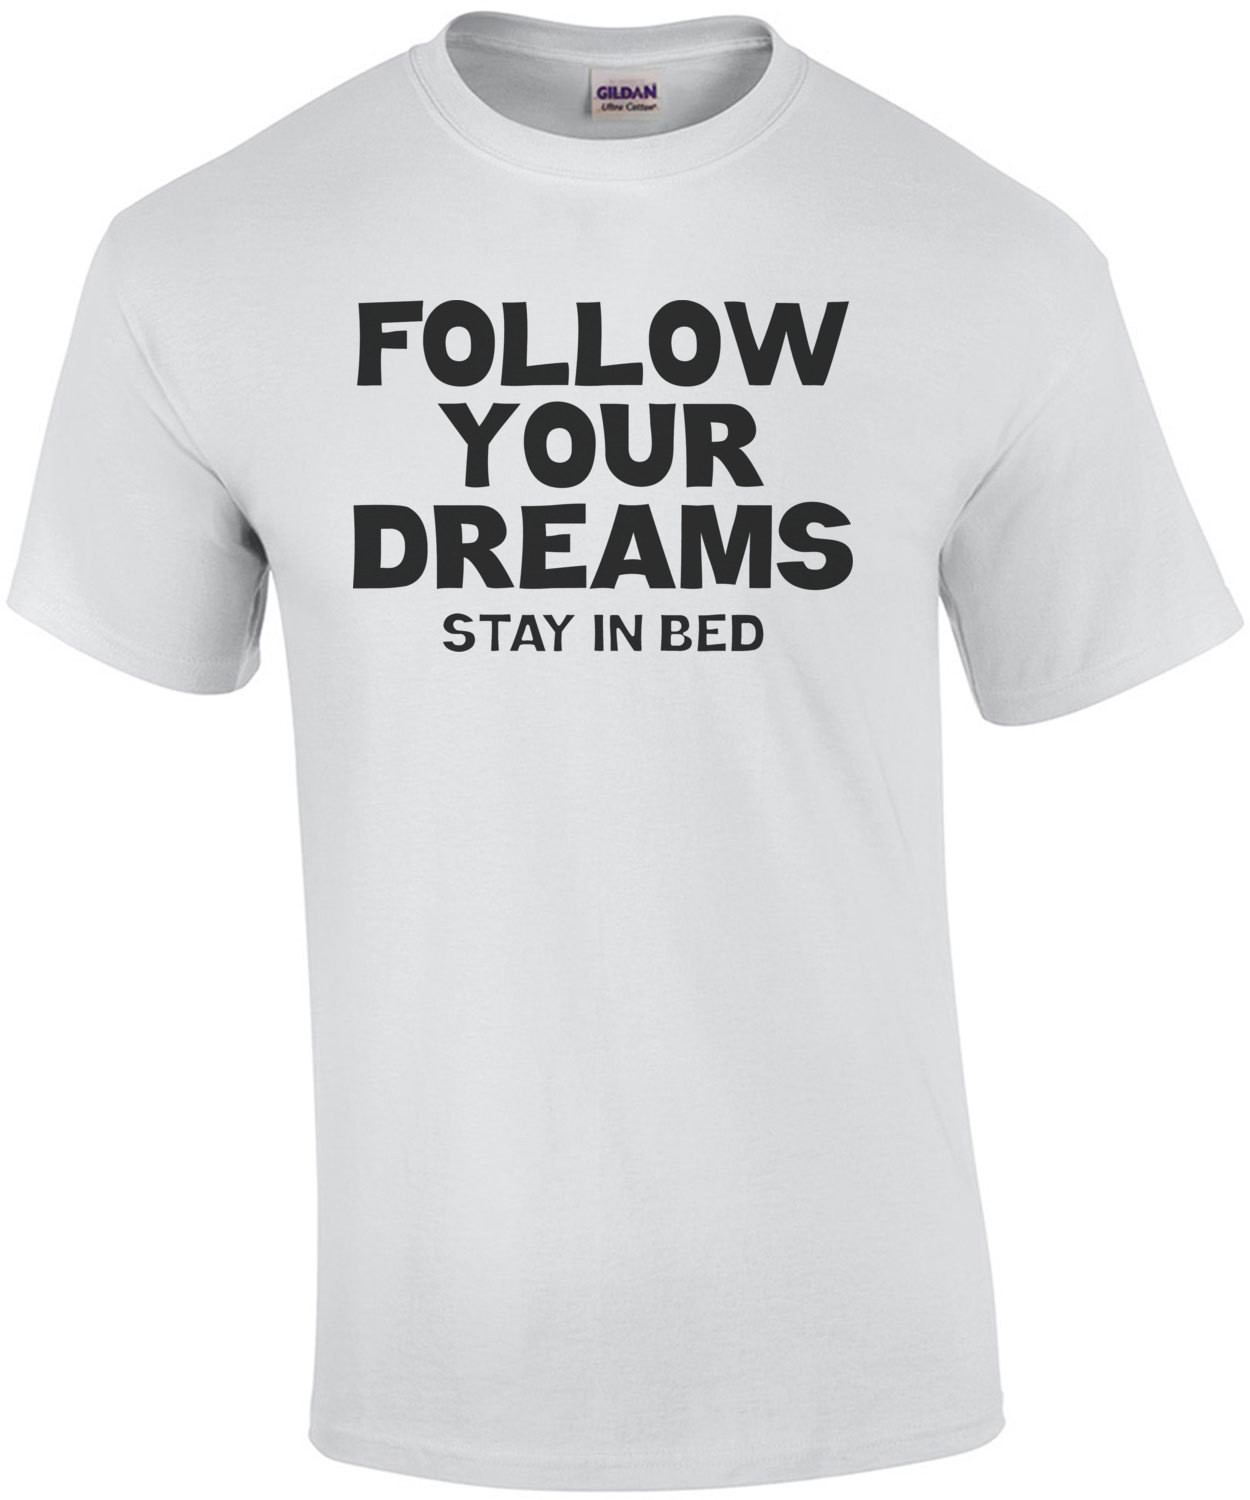 Follow Your Dreams Stay In Bed T-Shirt